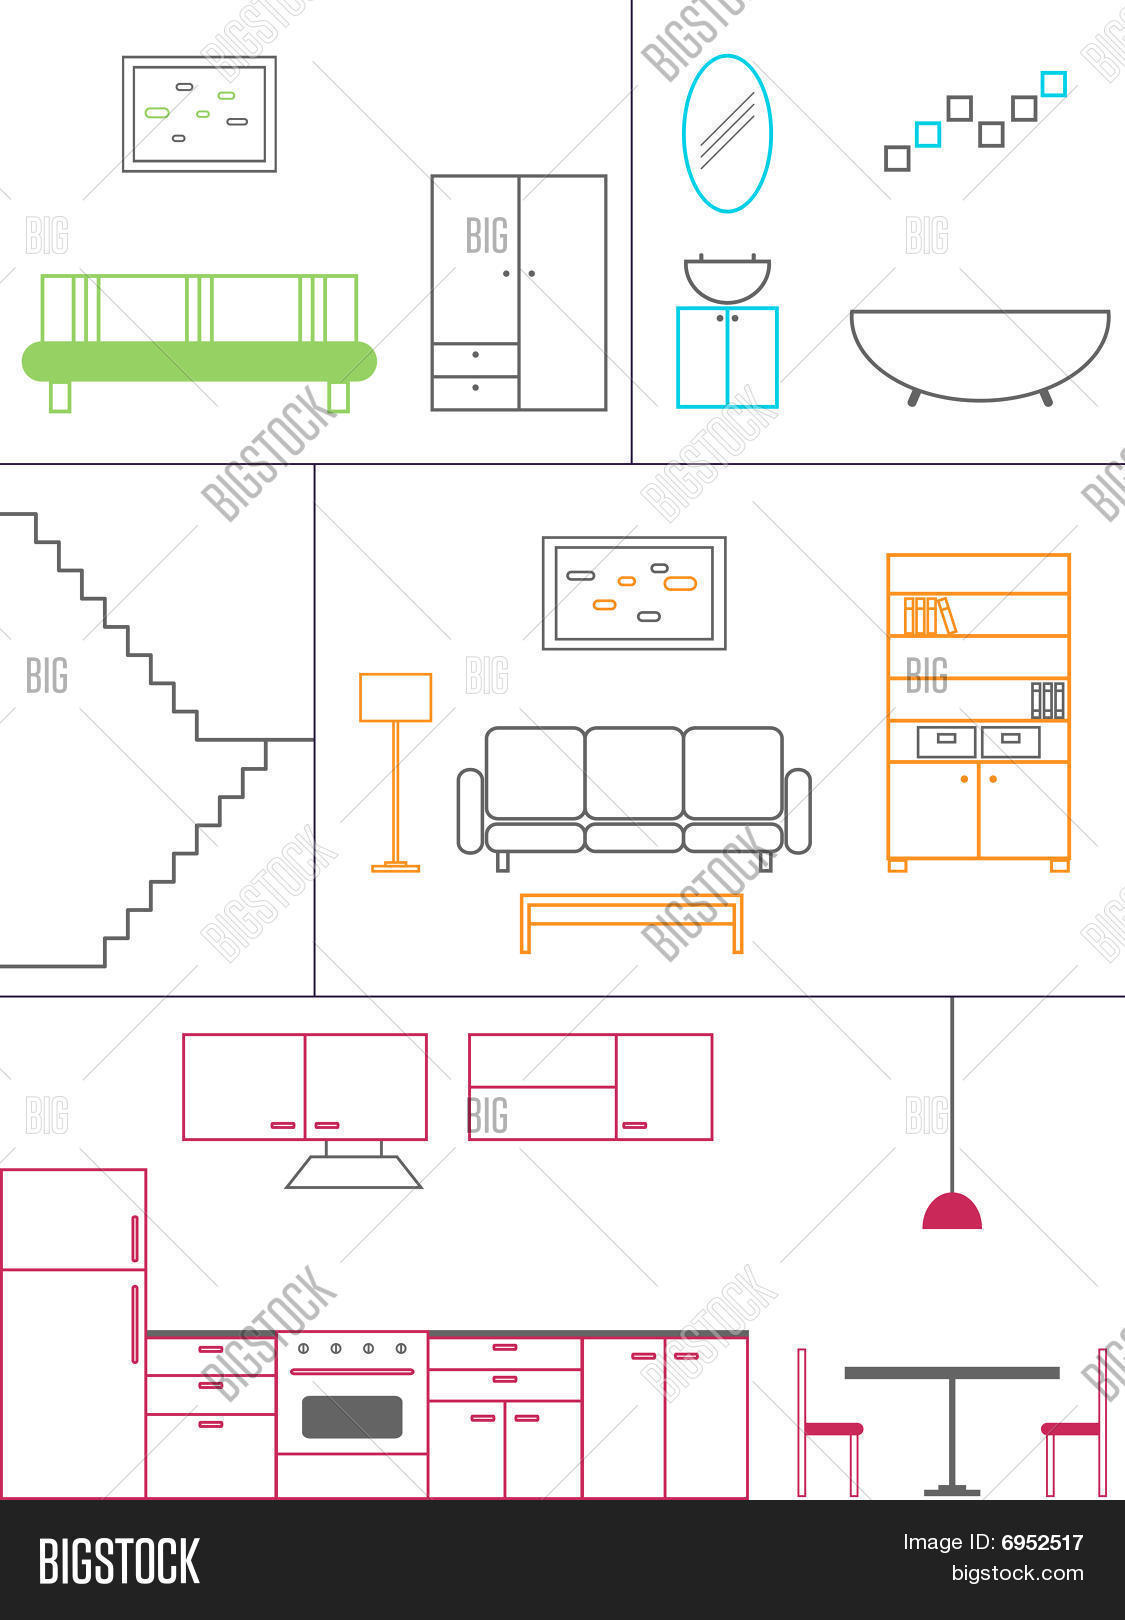 House Plan Vector & Photo (Free Trial) | Bigstock on free house drawing, modern home design plans, free land, floor plans, free toys, free blueprints, free house agreements, free marriage, free lifestyle, free home, free house models, free printable notebook planner, free clip art black and white house, free business, free house values, extreme makeover home plans, free modern houses, free house ideas, building plans, free house budget,